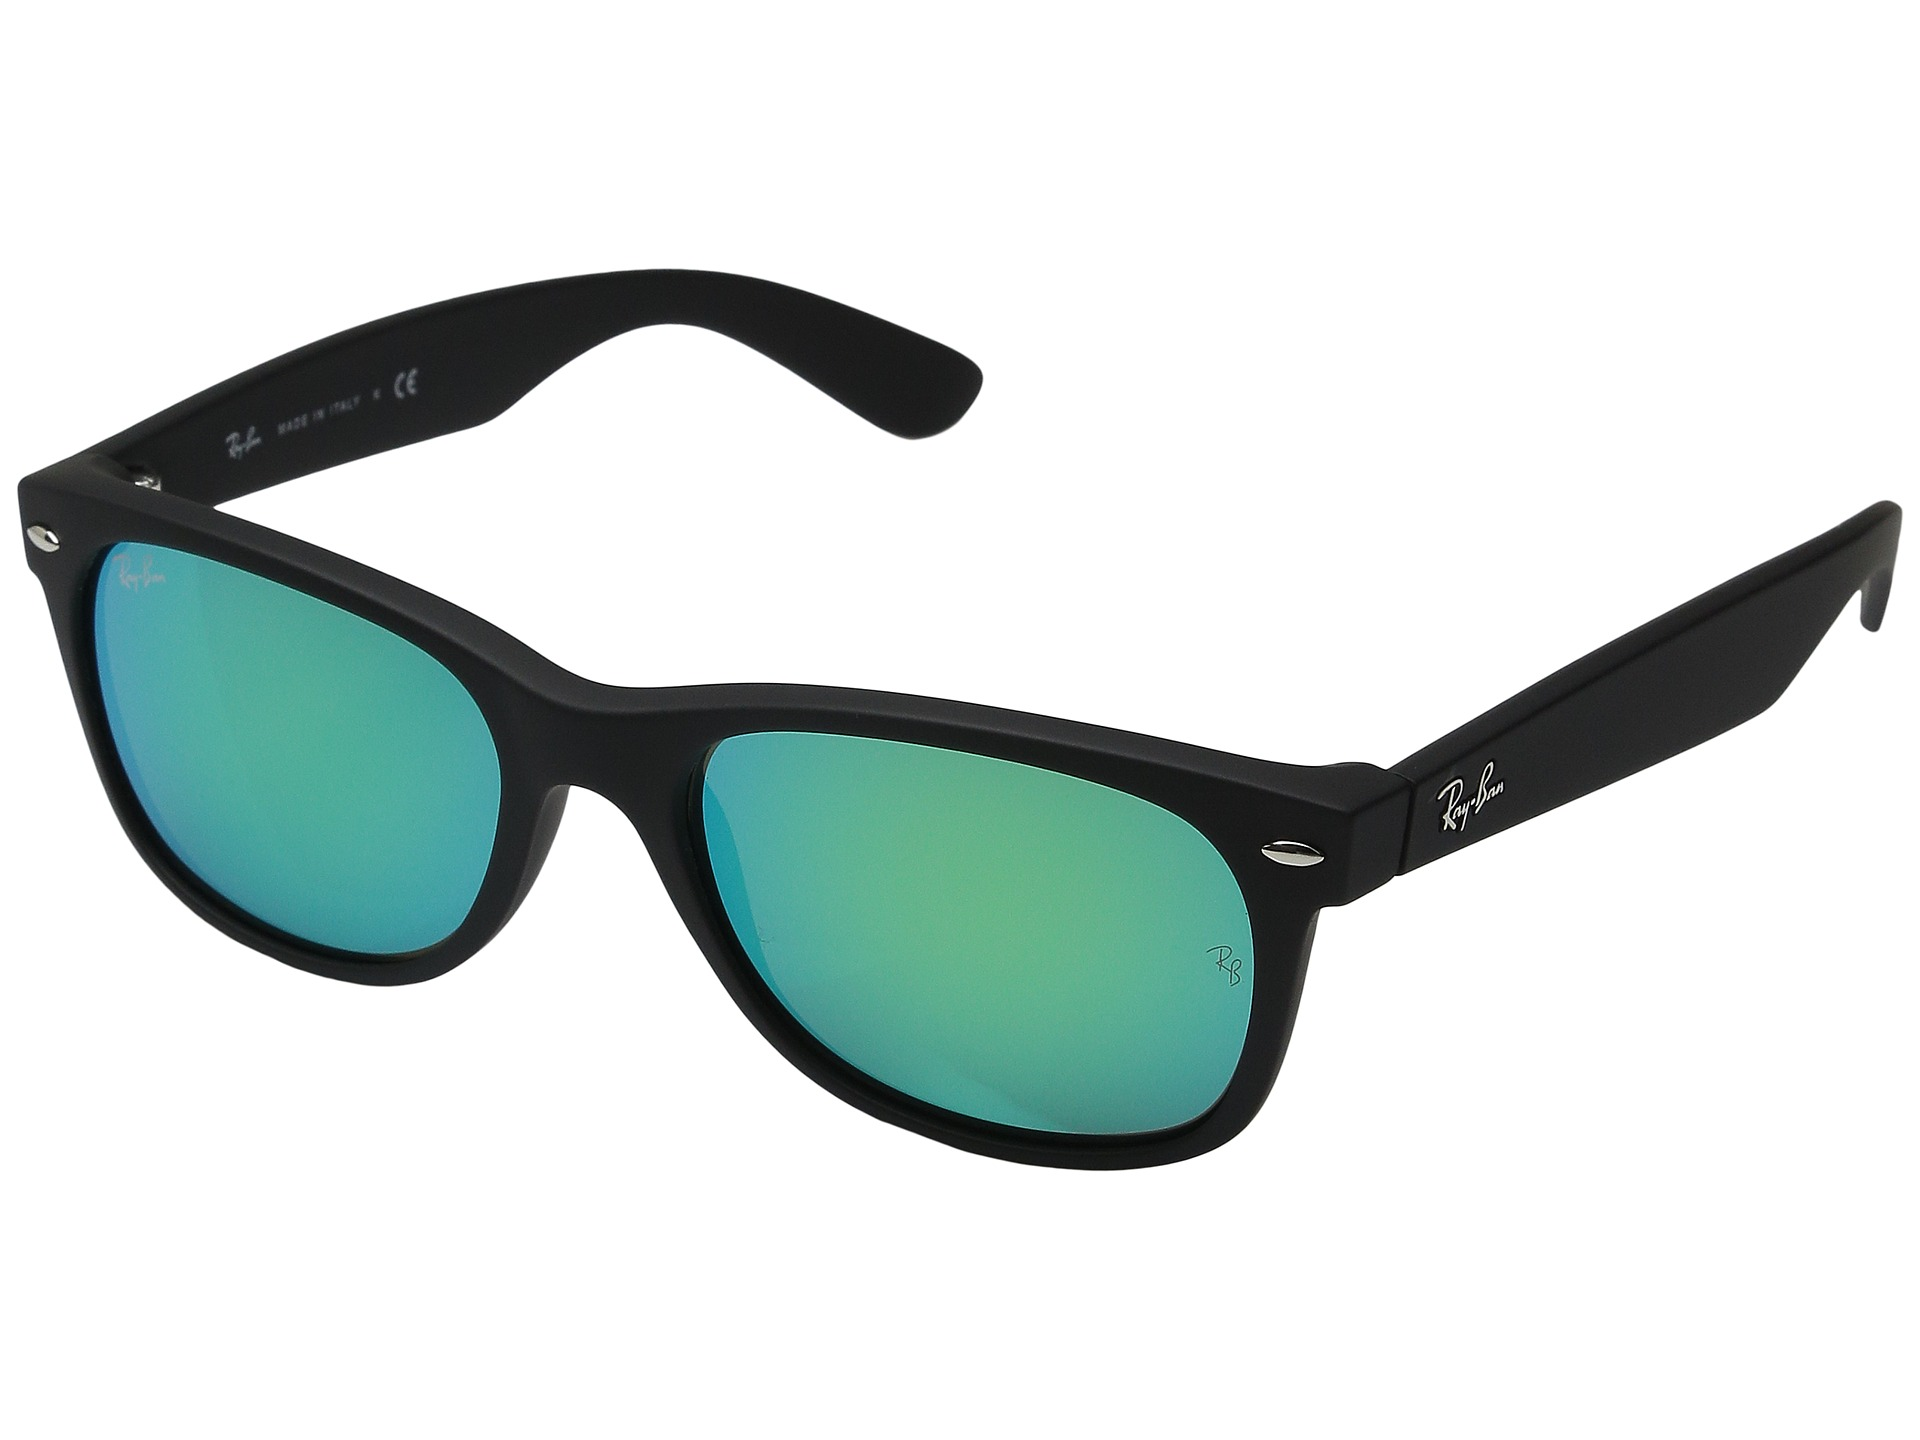 Ray ban zappos jeans - Pepe jeans colombia ...